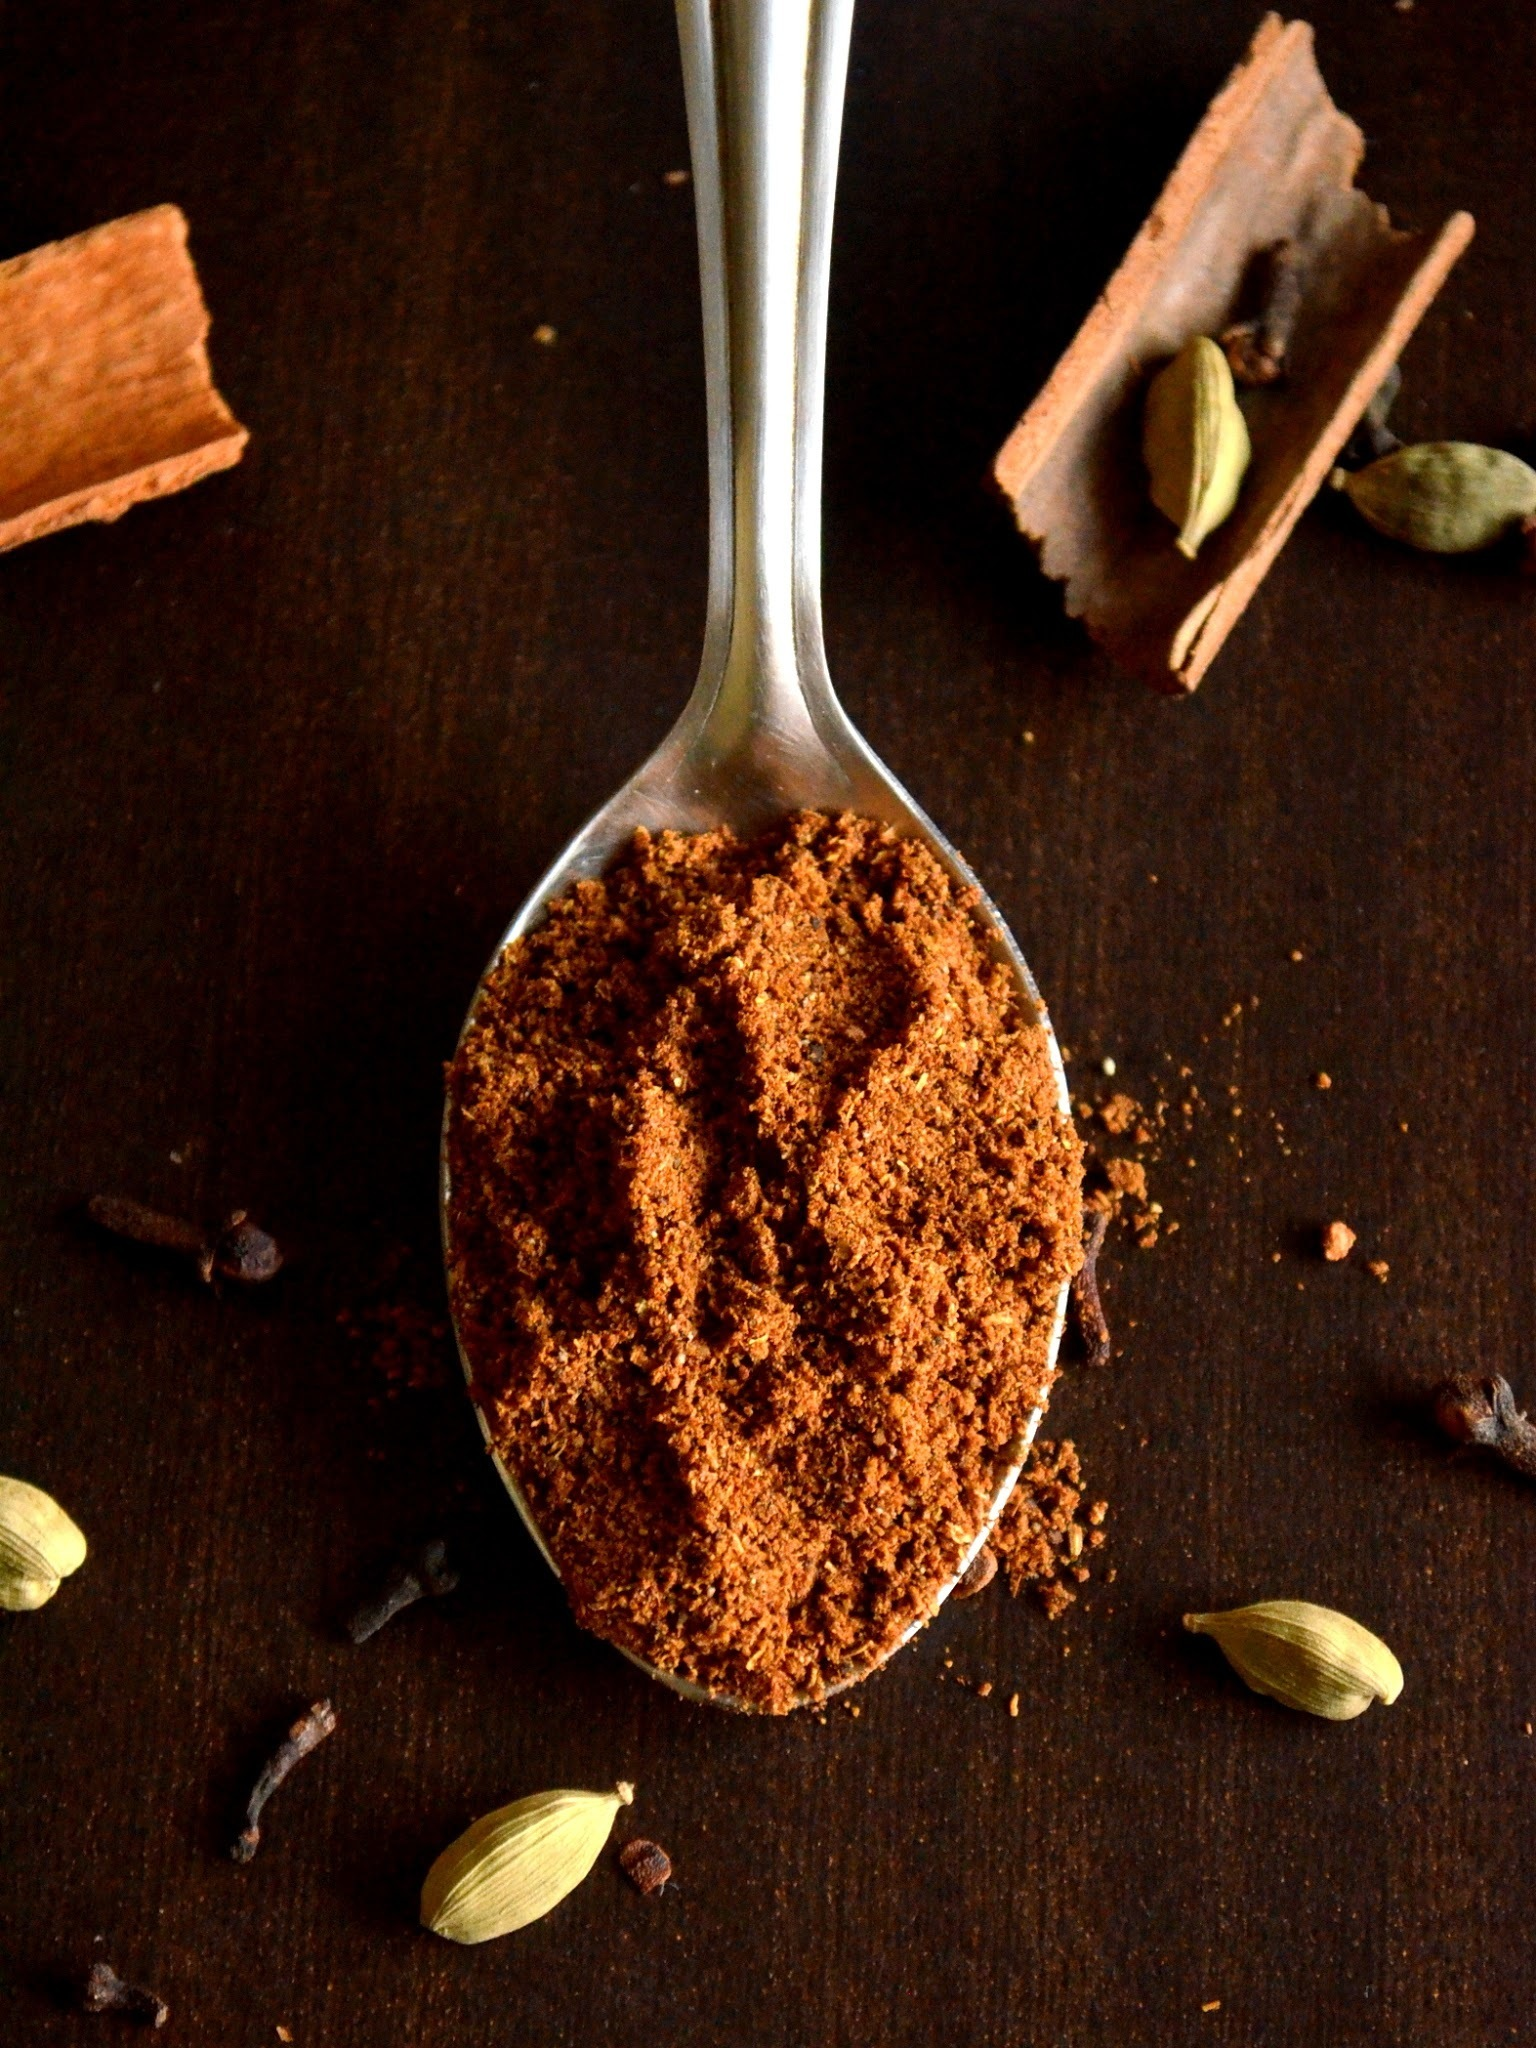 Garam Masala Recipe | Easy Homemade Garam Masala Recipe | How to make garam masala (spice blend) powder at home